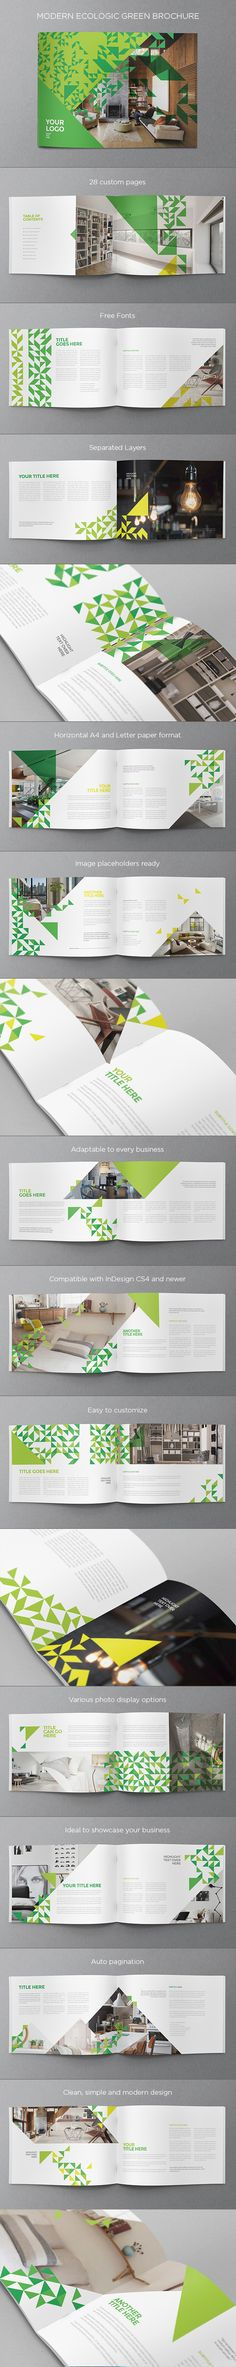 Modern Ecologic Green Brochure. Download here: http://graphicriver.net/item/modern-ecologic-green-brochure/13954111?ref=abradesign